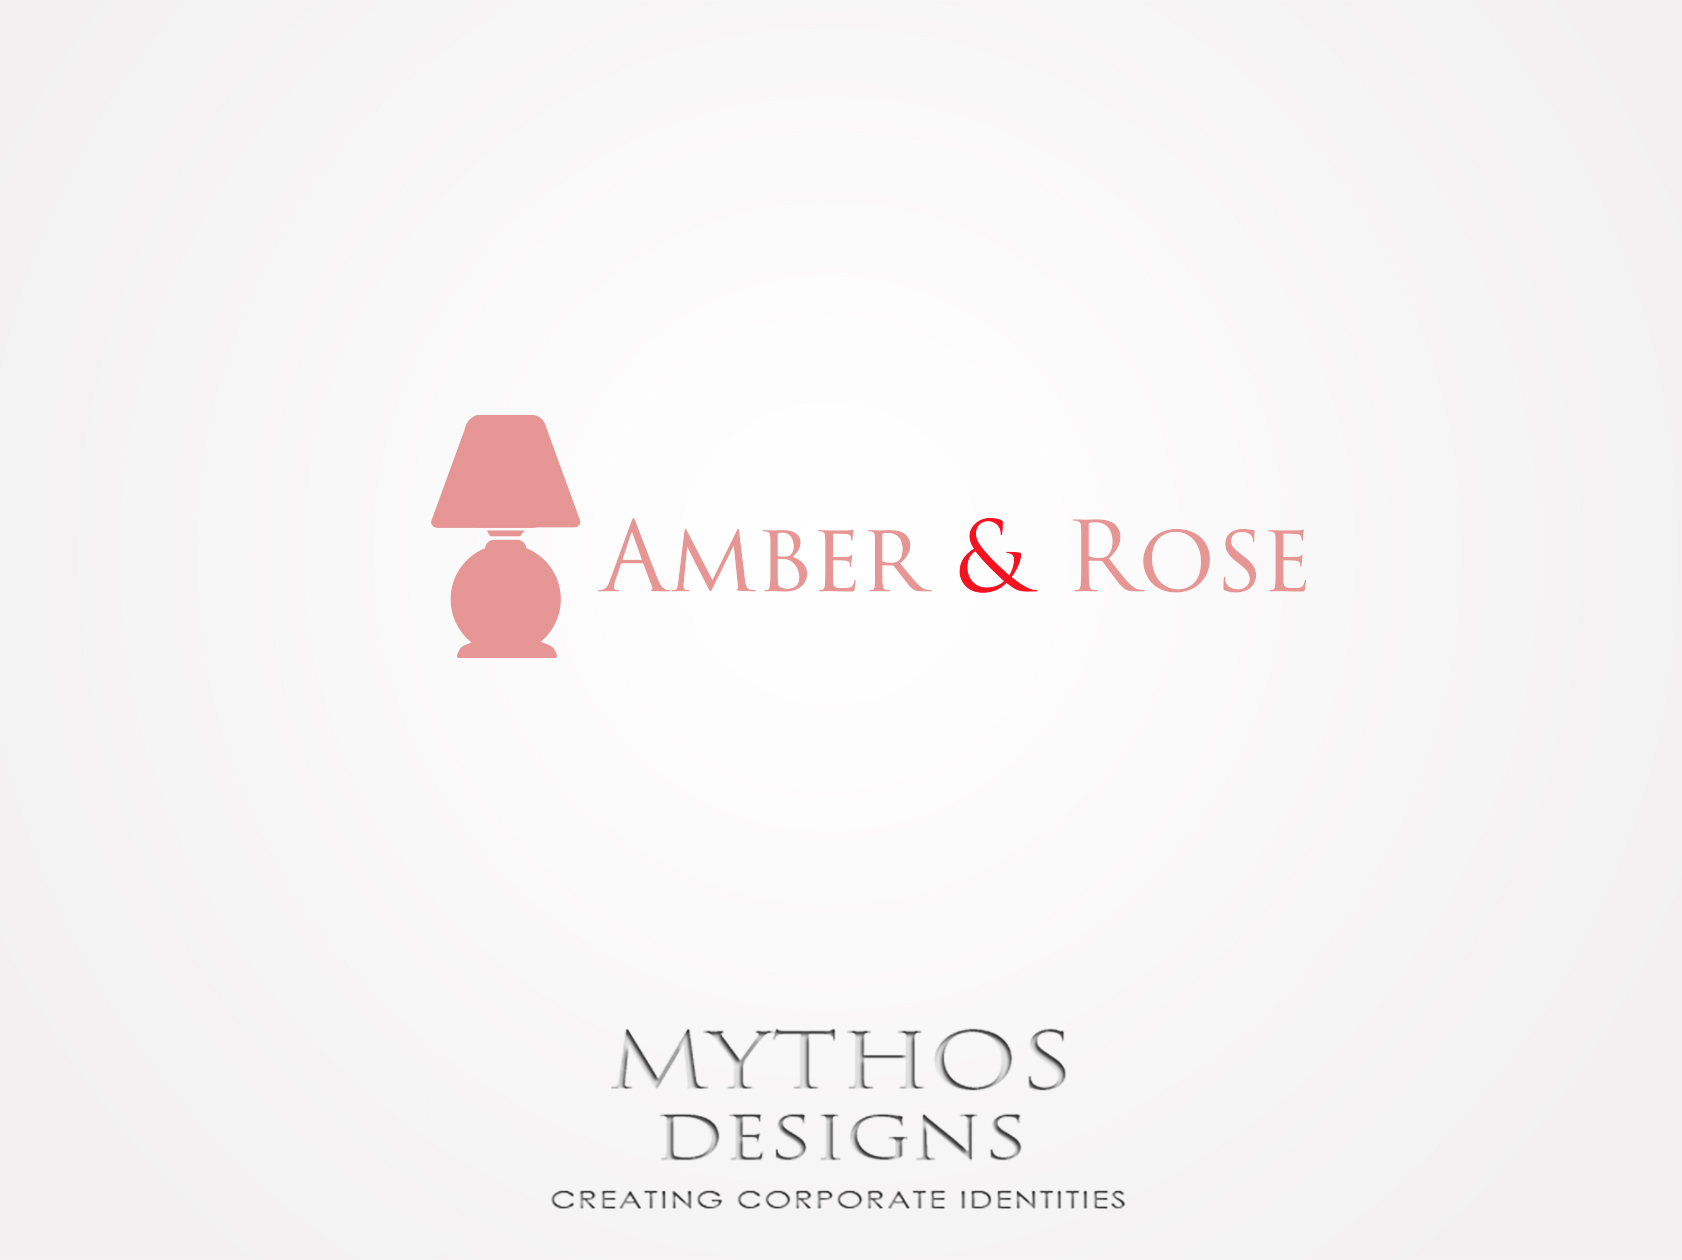 Logo Design by Mythos Designs - Entry No. 58 in the Logo Design Contest Creative Logo Design for Amber & Rose.